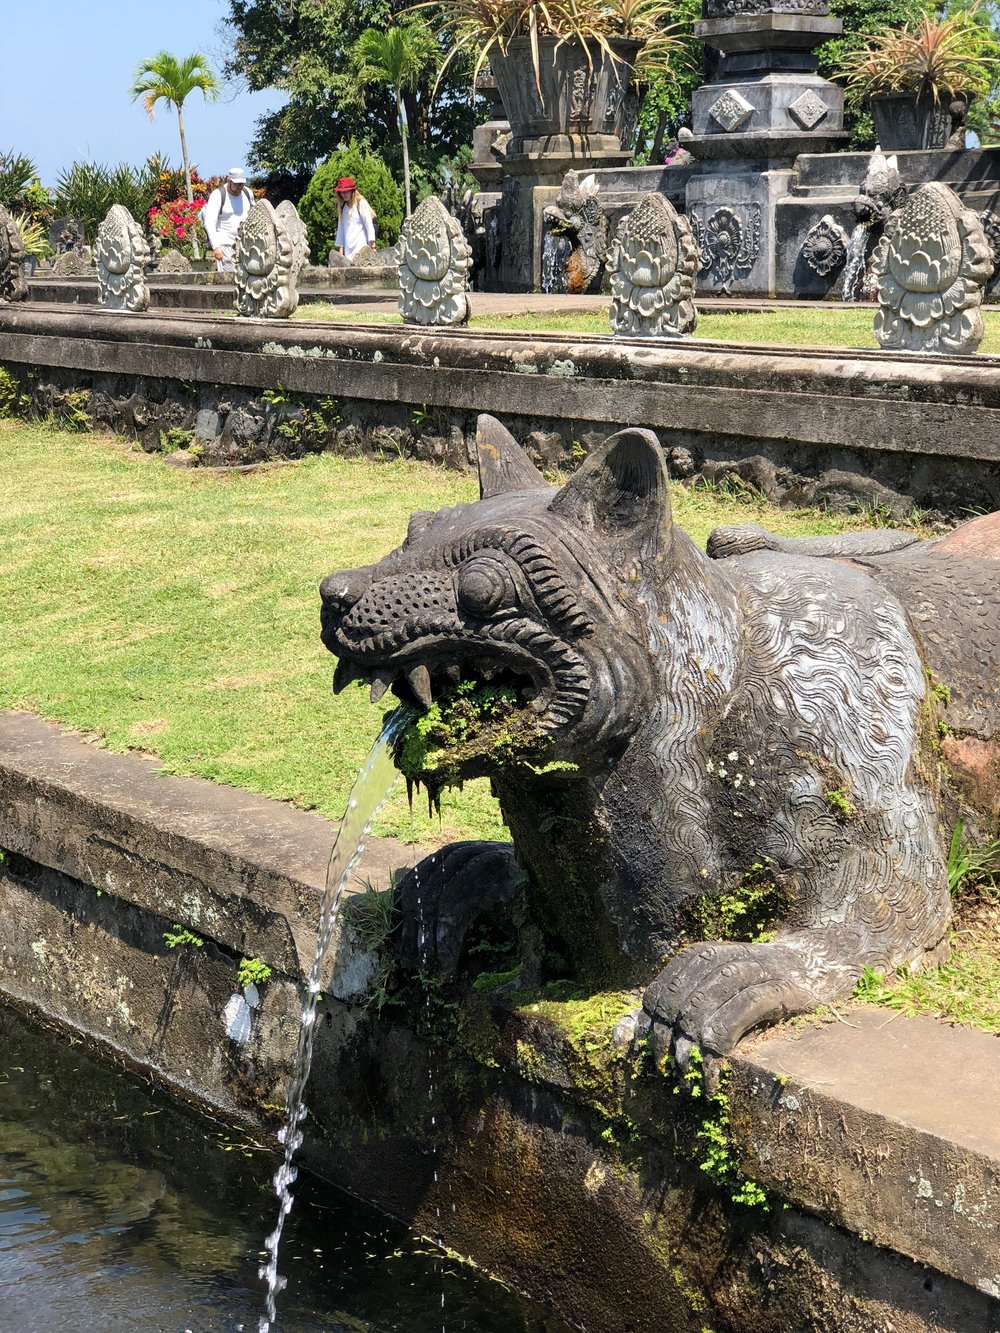 The waterspouts at Tirta Gangga depict various creatures